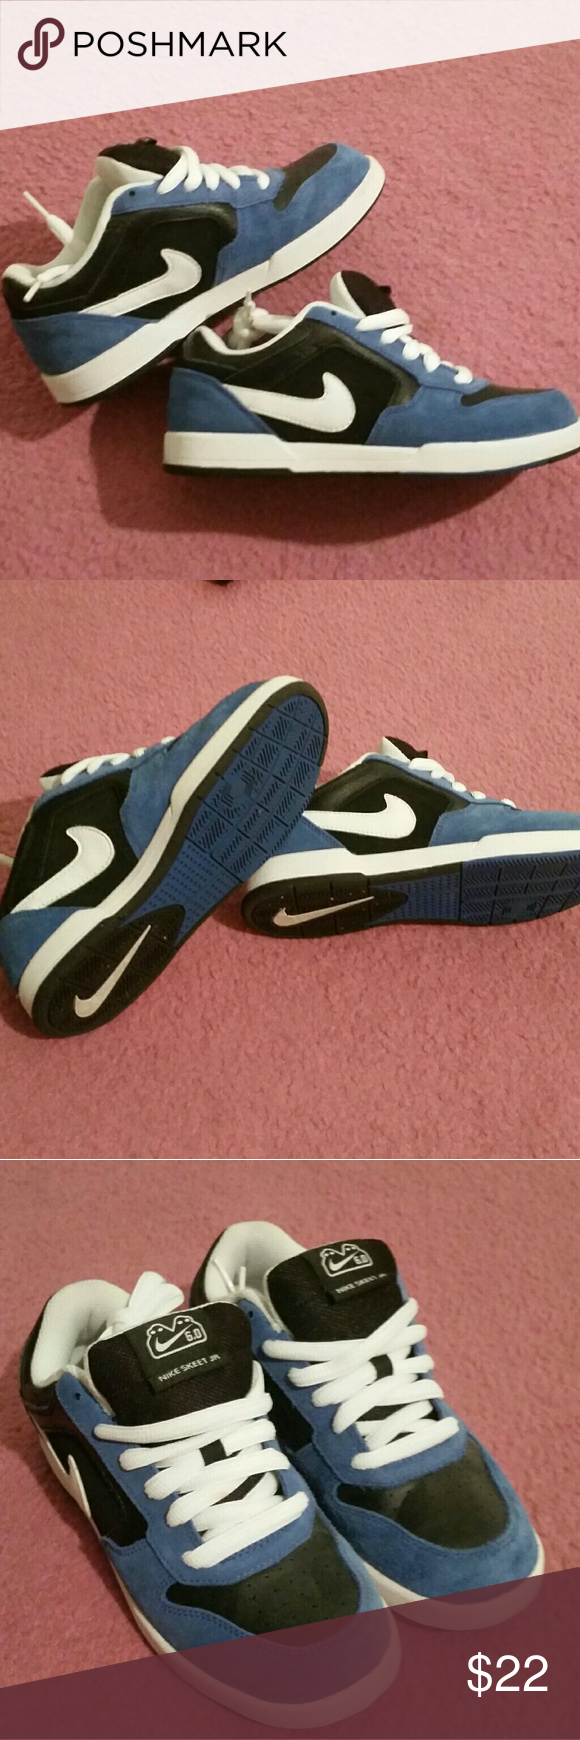 e27a4d507 Nike Skeet Jr (Kids) Size 4.5 Kids size 4.5 Suede Blue Great pre-owned  condition Very clean Nike Shoes Sneakers